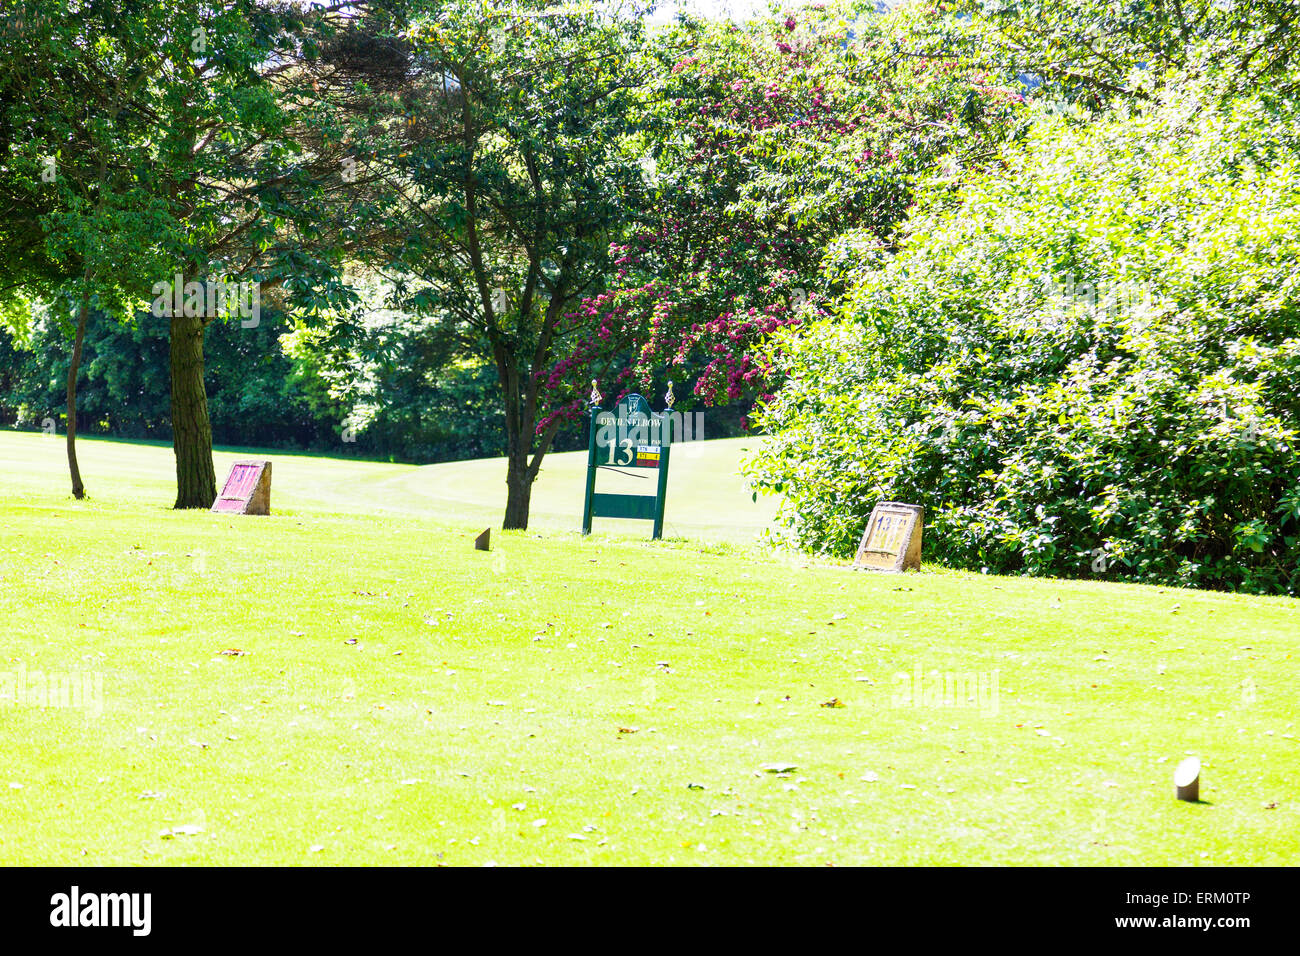 Golf tee markers number 13 marker club sign signs devils elbow Louth Lincolnshire UK England - Stock Image